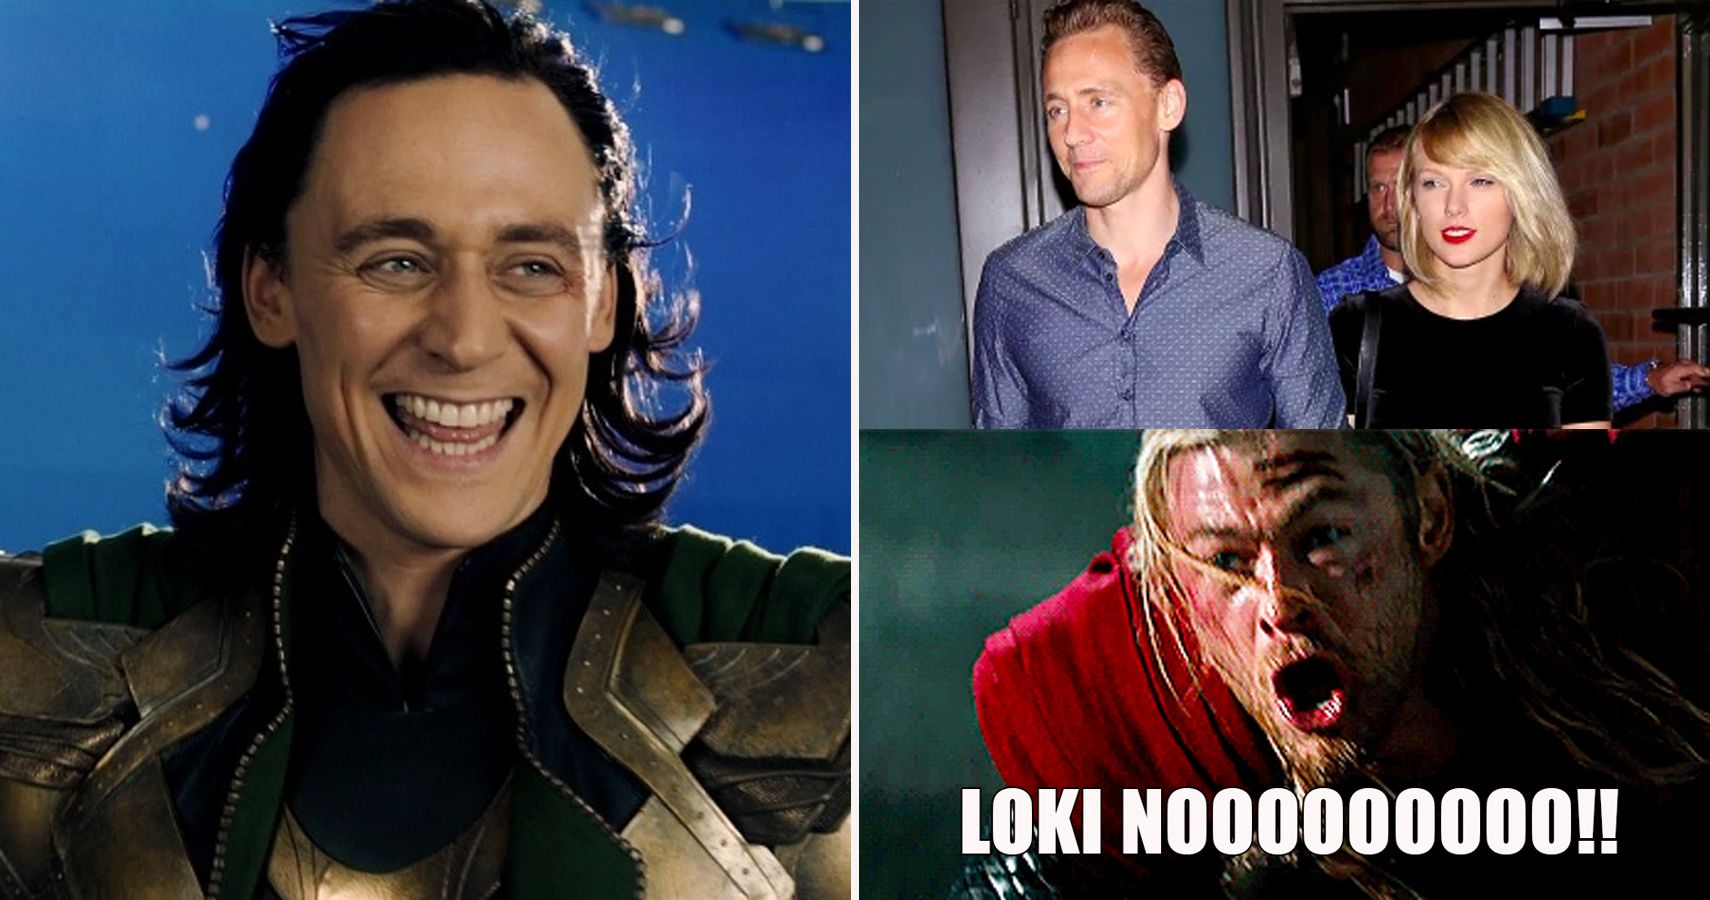 15 Hilarious Thor Vs  Loki Memes That Would Even Make Odin Laugh